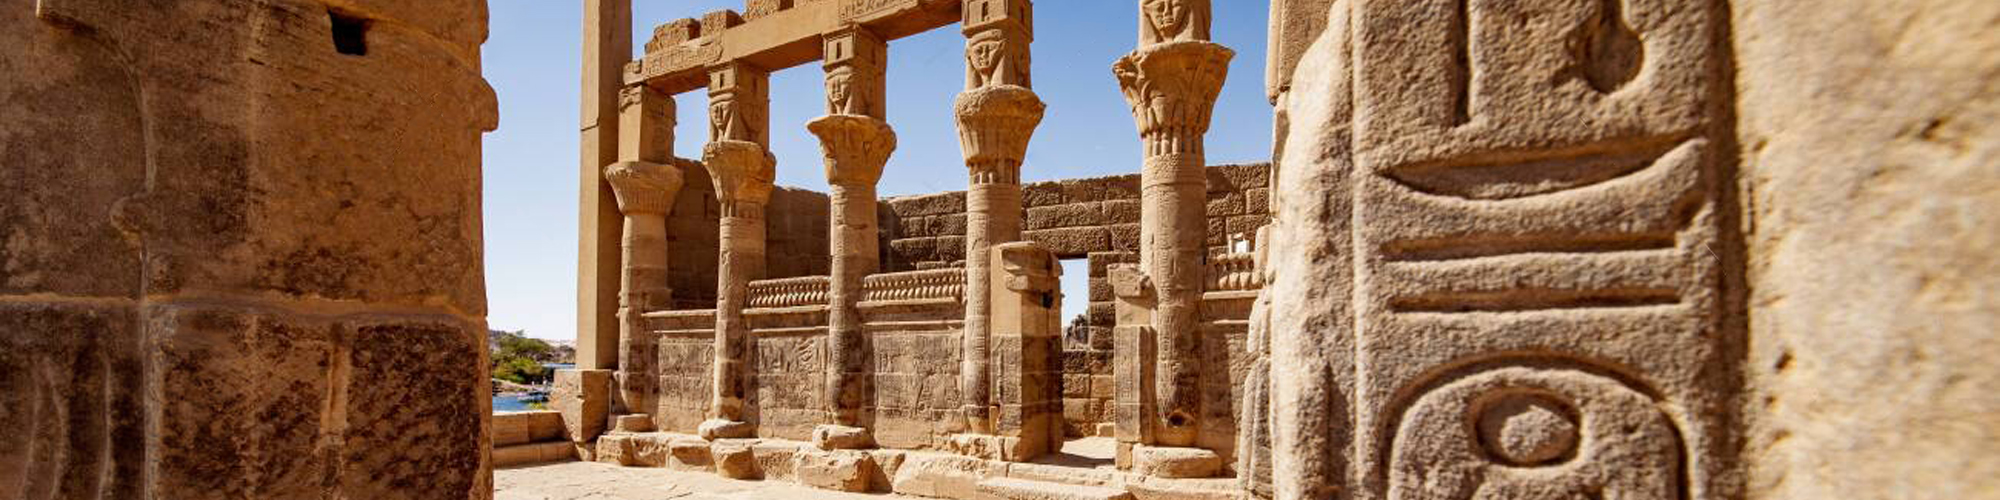 Trips to Aswan From Port Ghalib -Port Ghalib to Aswan - Tours From Hurghada